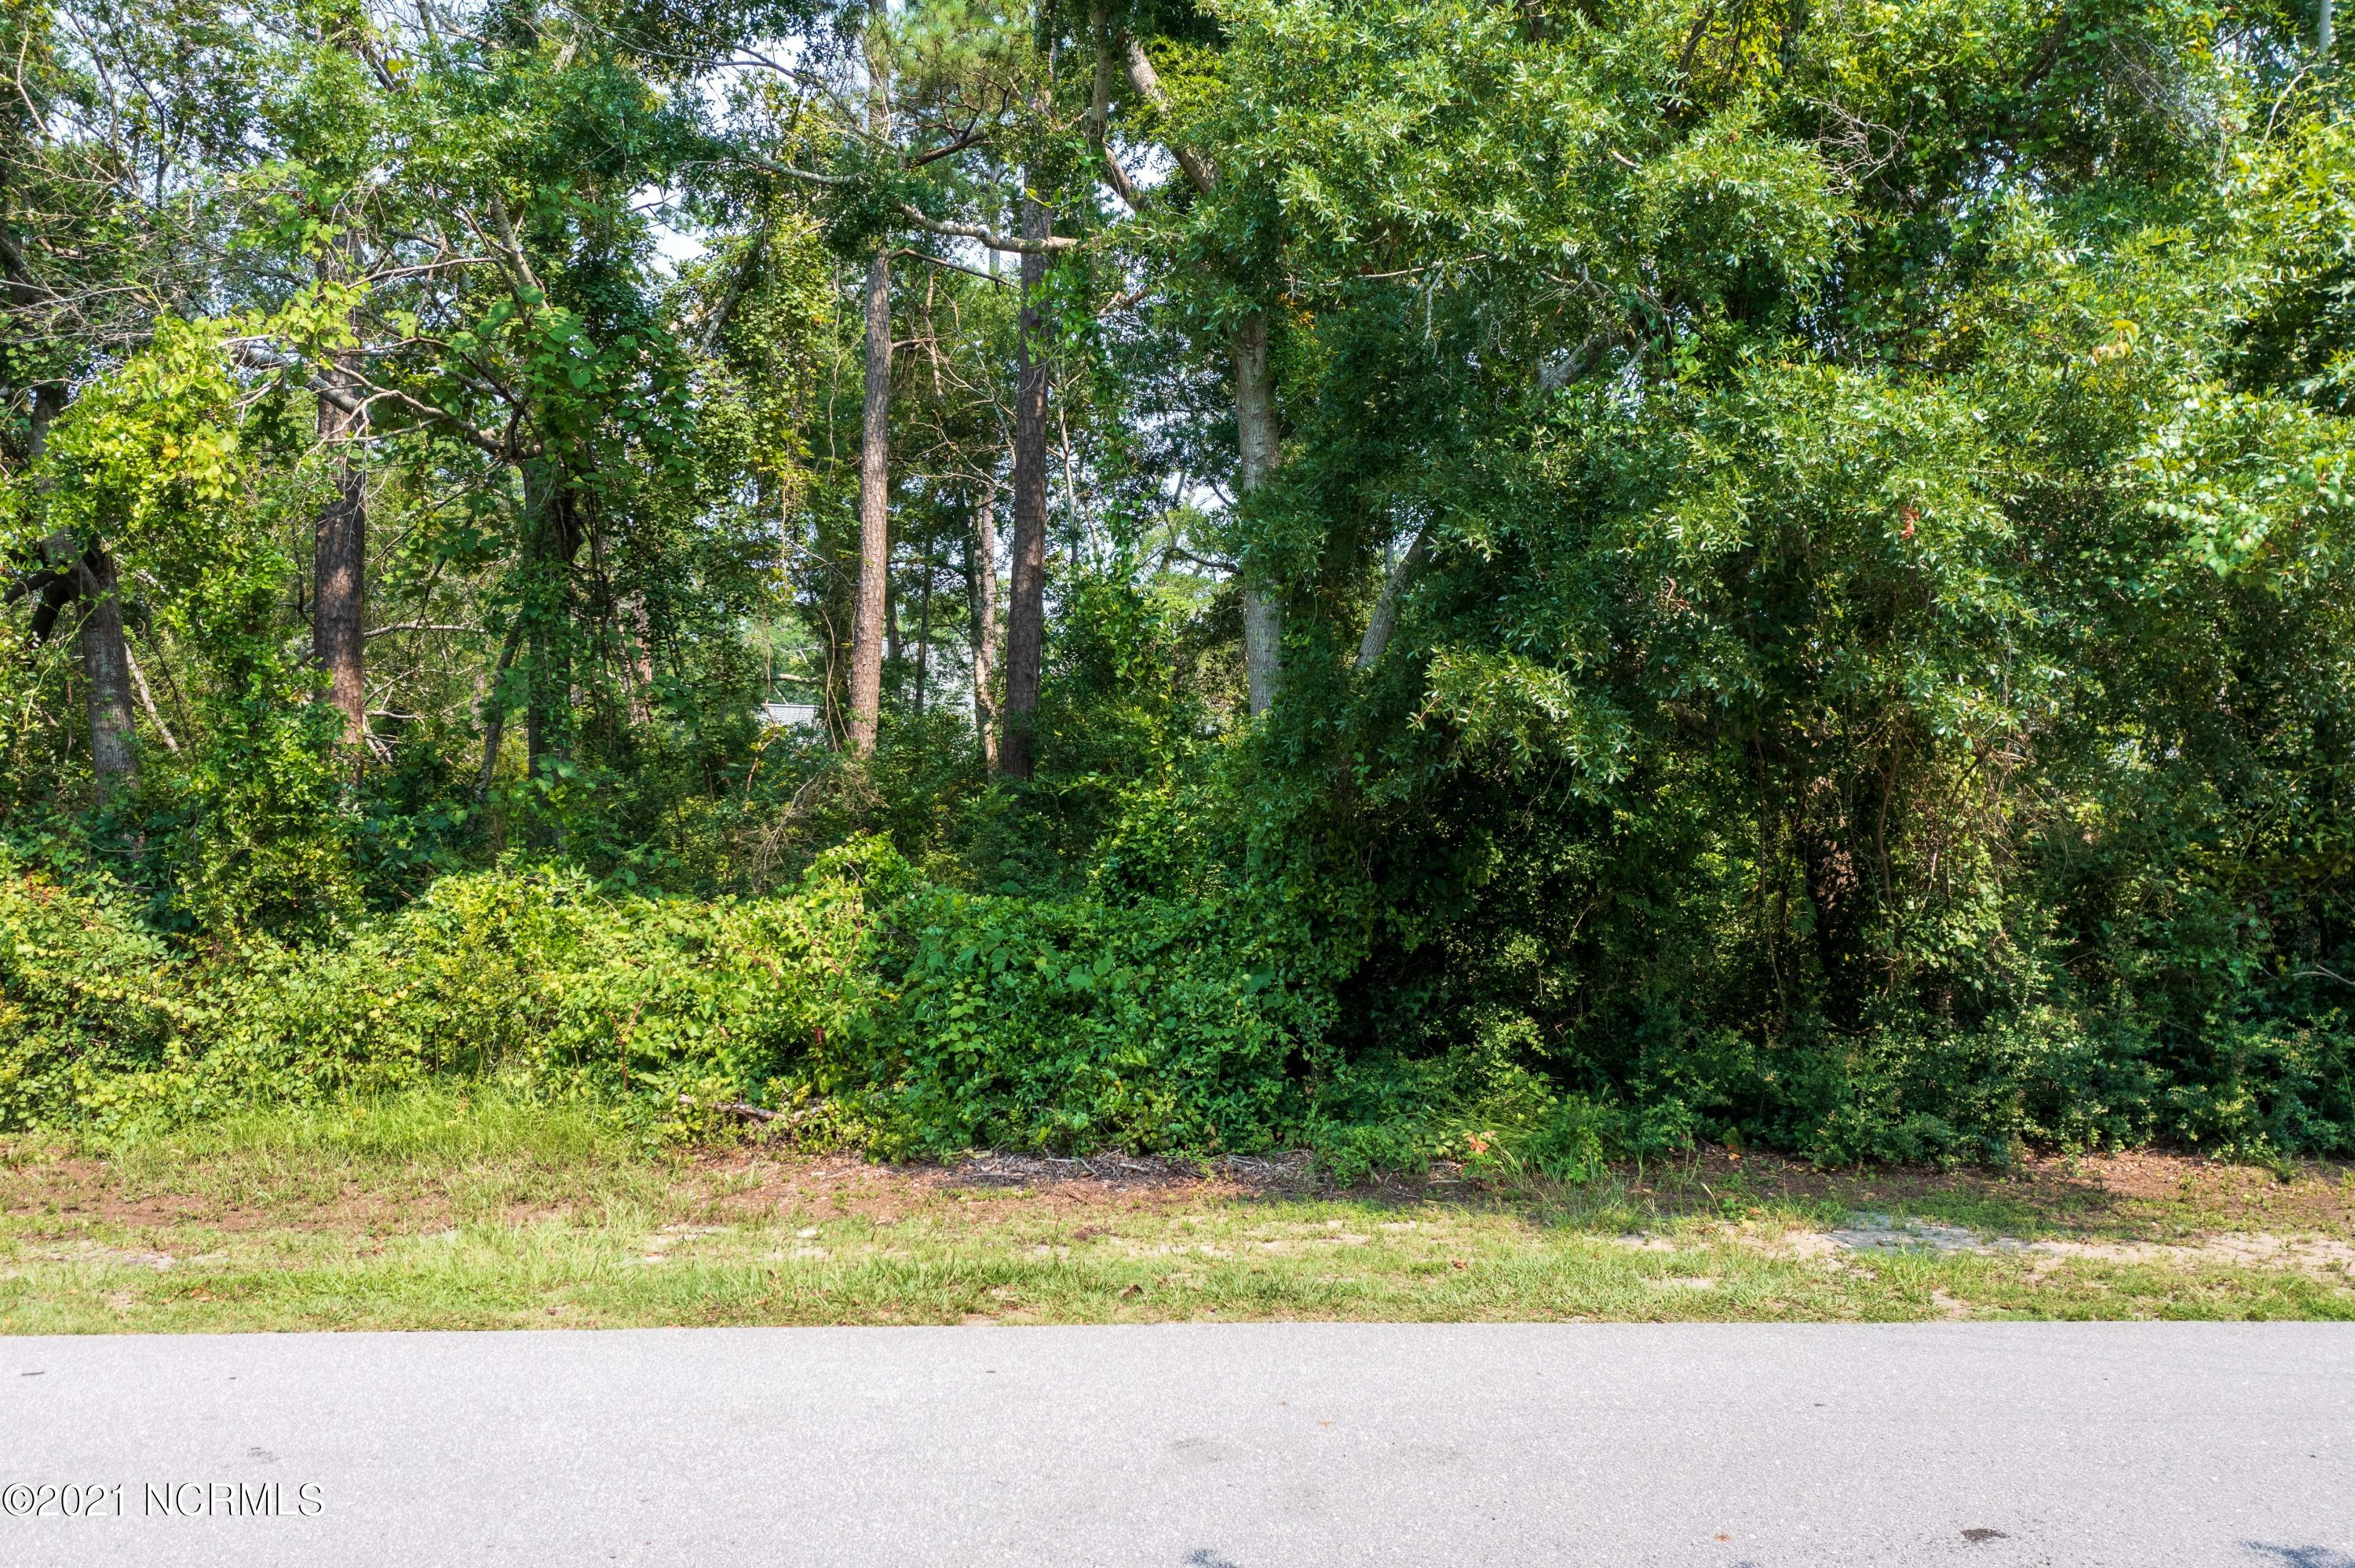 Second row lot in the gated Chadwick Shores community. This lot will produce nice water views of the ICWW. This is one of the better second row lots in Chadwick Shores. The neighborhood has a day dock area and a kids playground area. Schedule an appointment today!! More photos coming soon!!